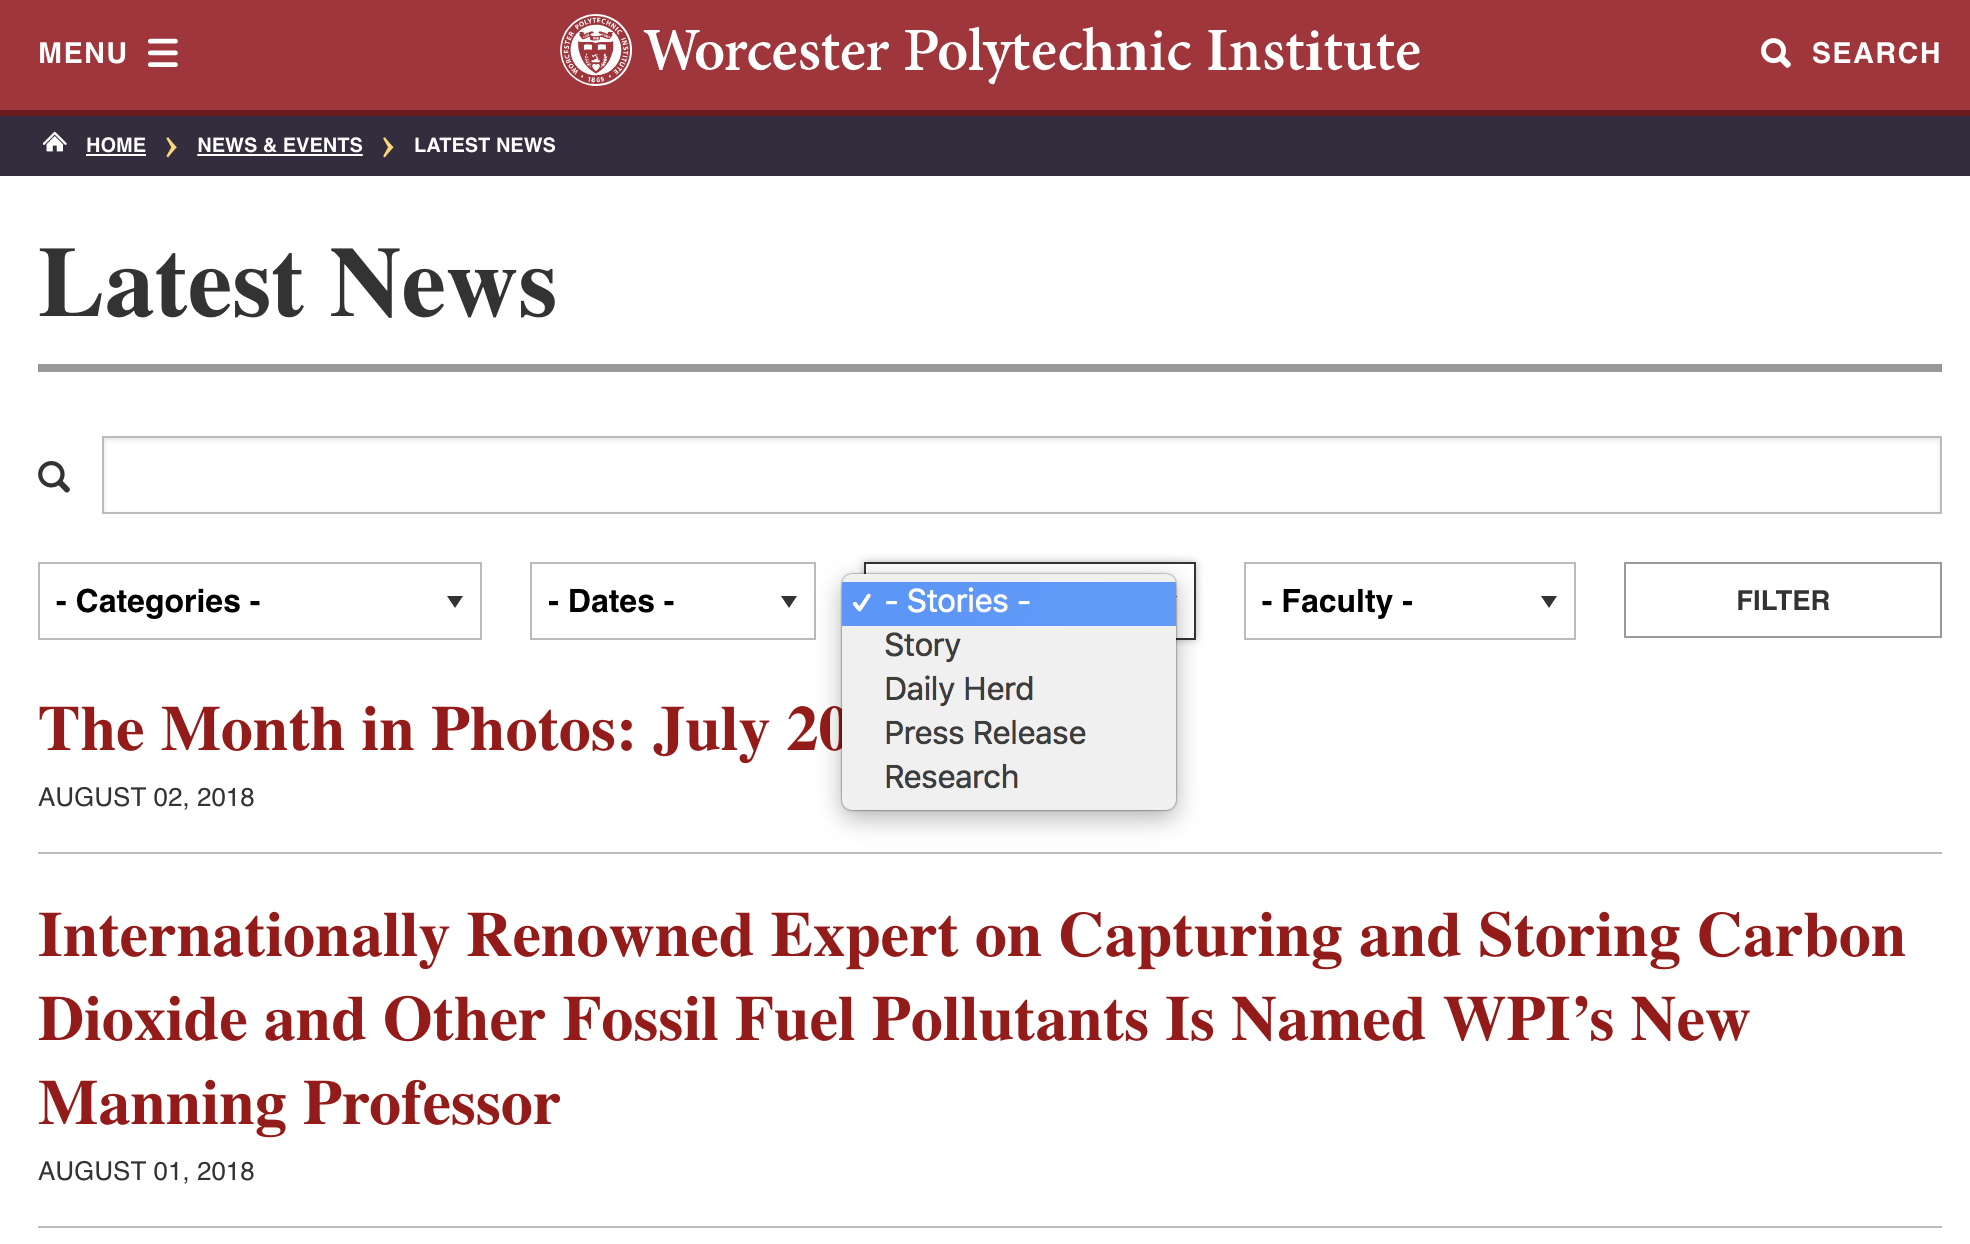 Screenshot of the Latest News page with new Stories & Faculty Filters